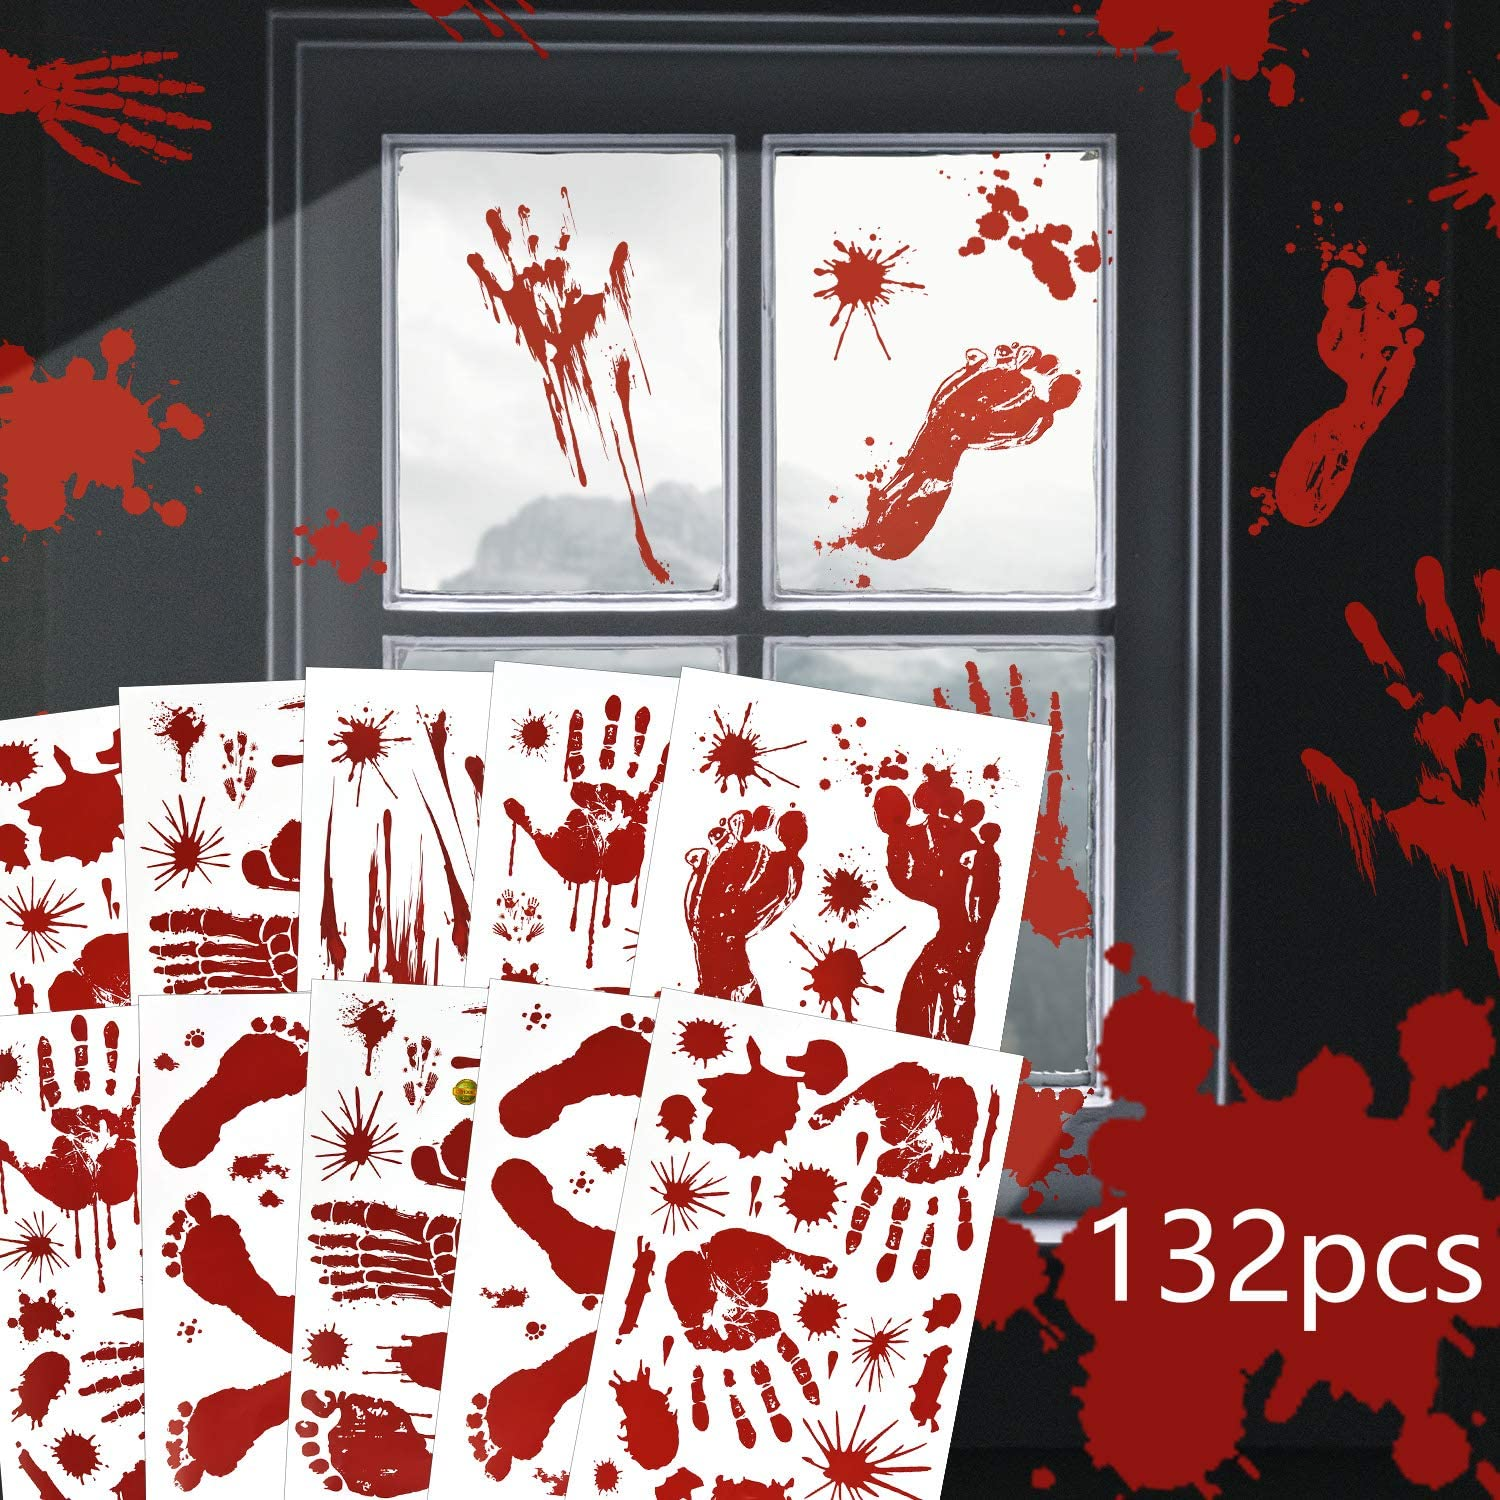 EAONE Halloween Decorations Bloody Handprint Footprint Stickers Window Wall Floor Clings Decals for Halloween Party Decorative Supplies, 10 Sheets